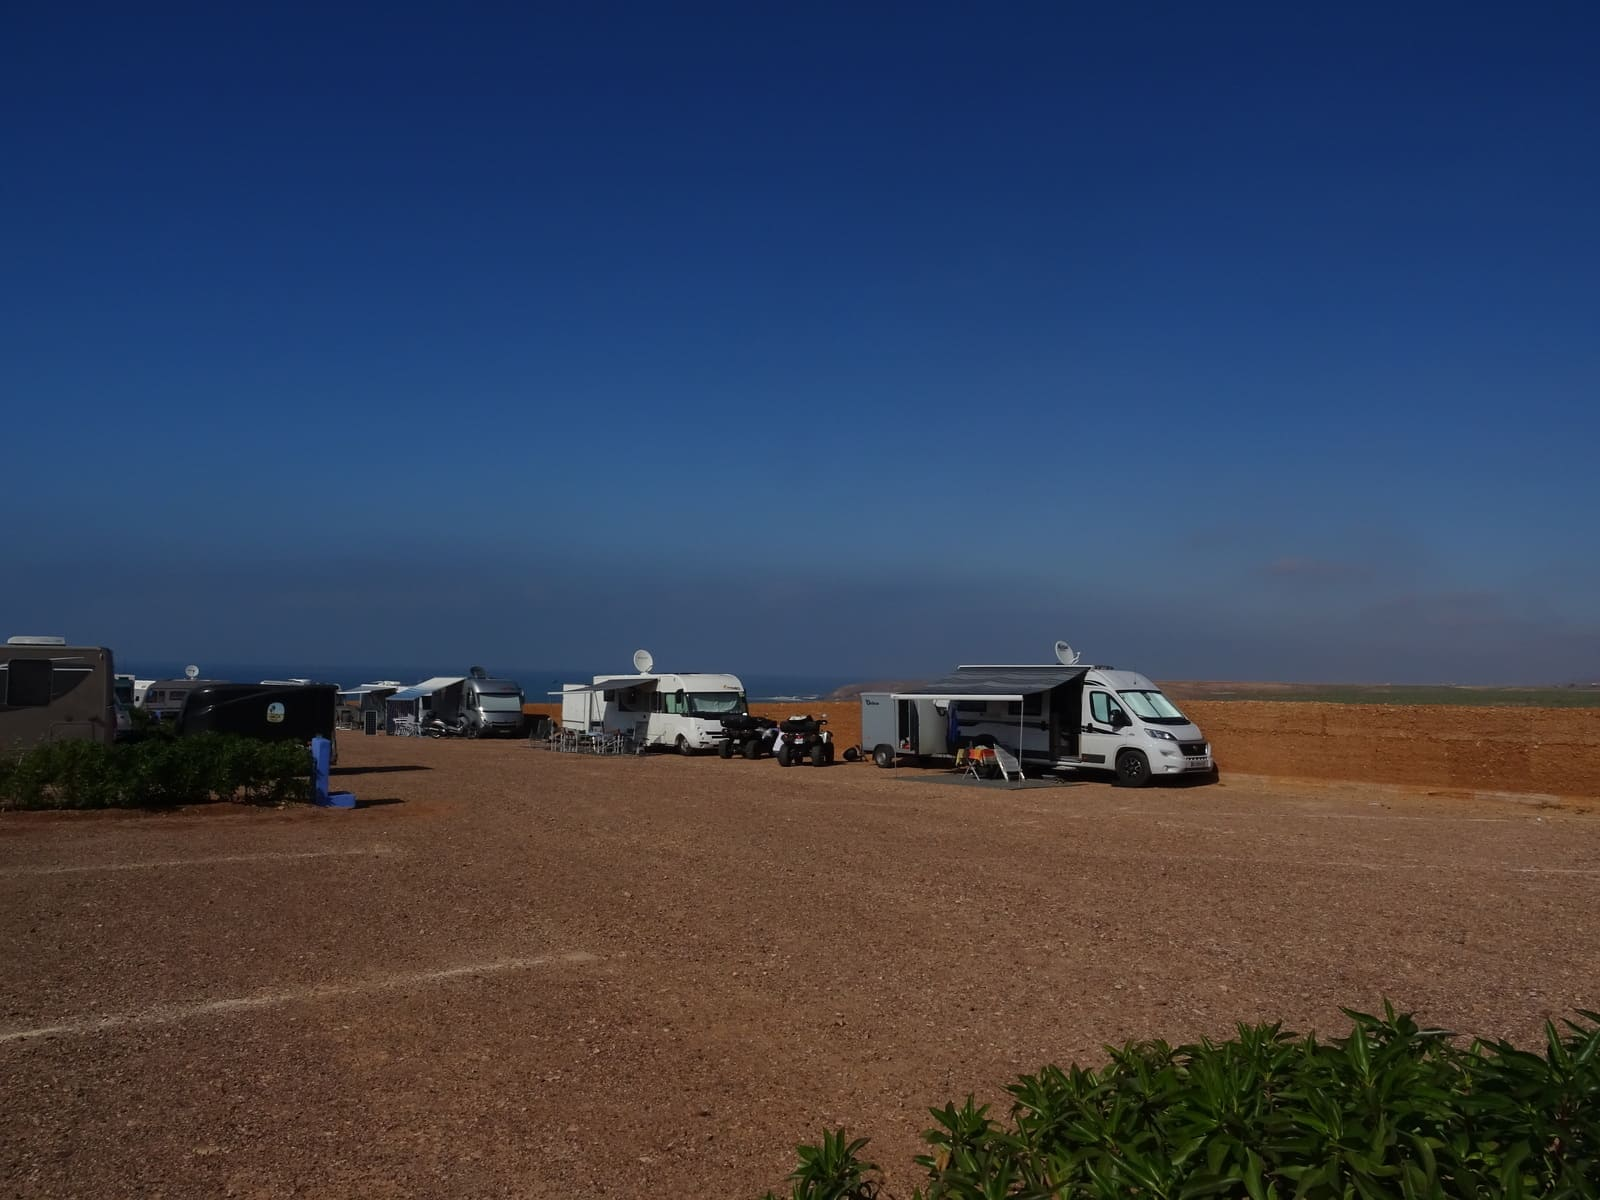 Bel emplacement au camping